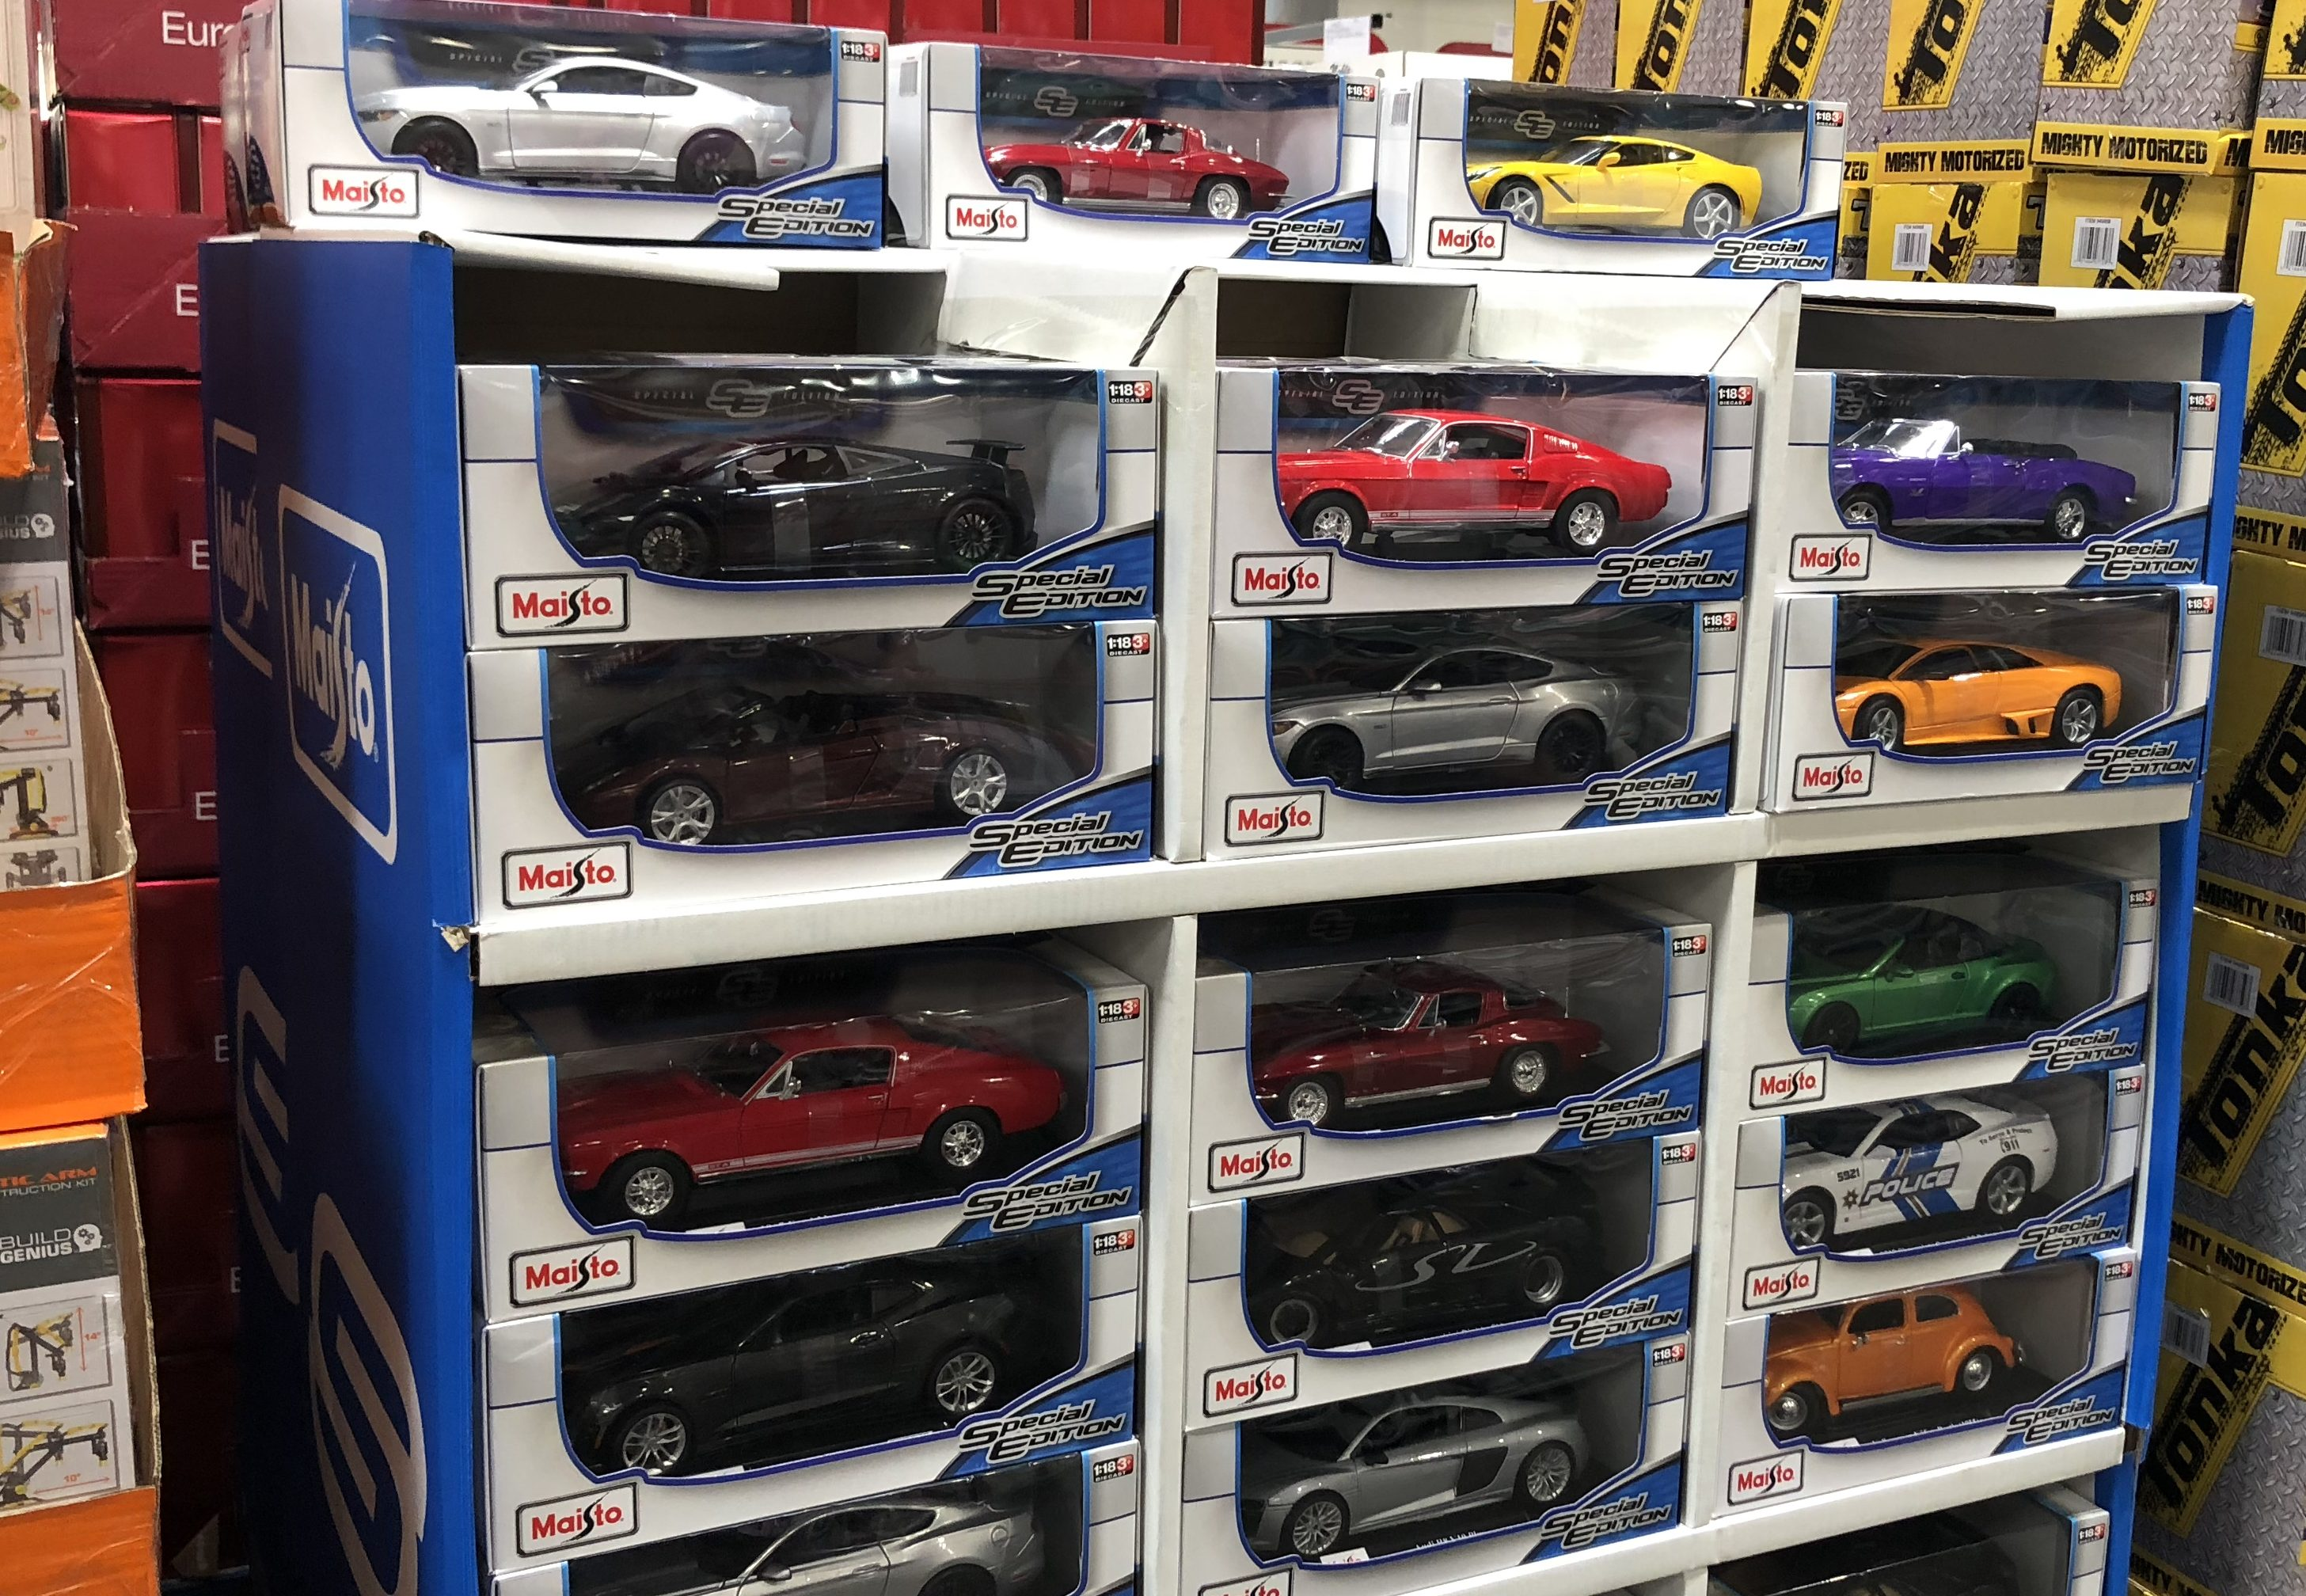 The best holiday toy deals for 2018 include Maisto Diecast cars at Costco